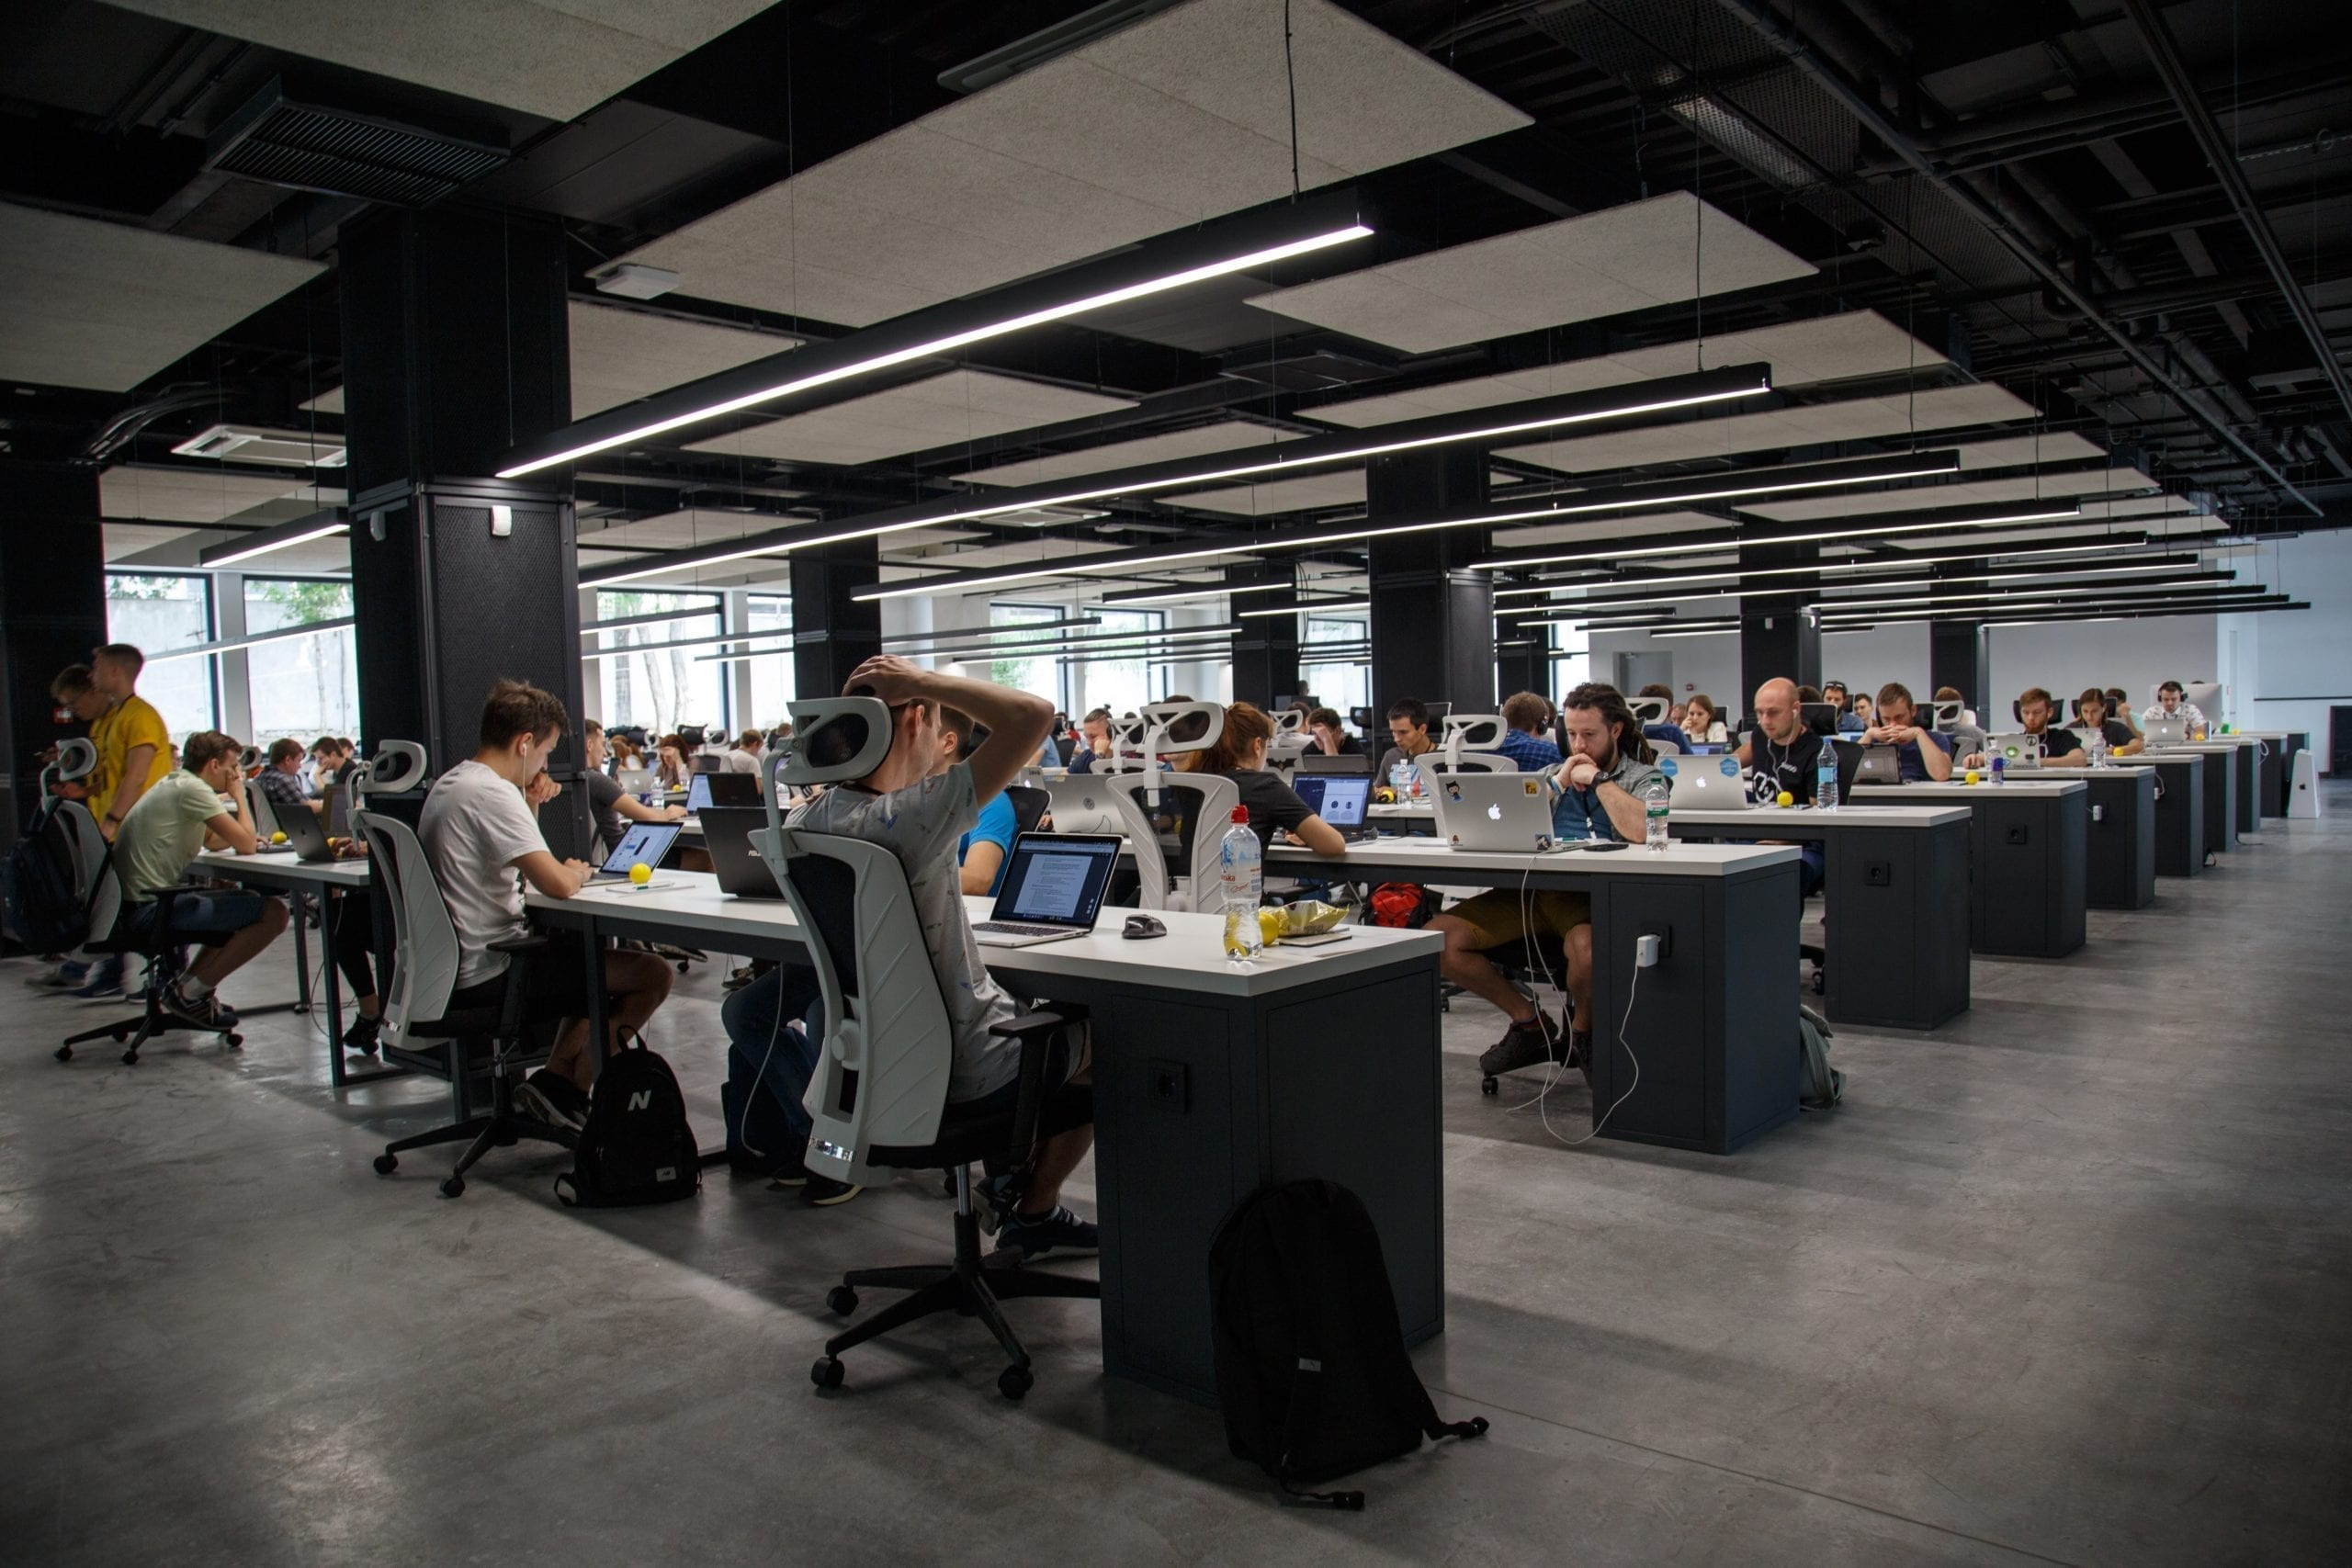 A photo illustration showing workers sitting at desks.